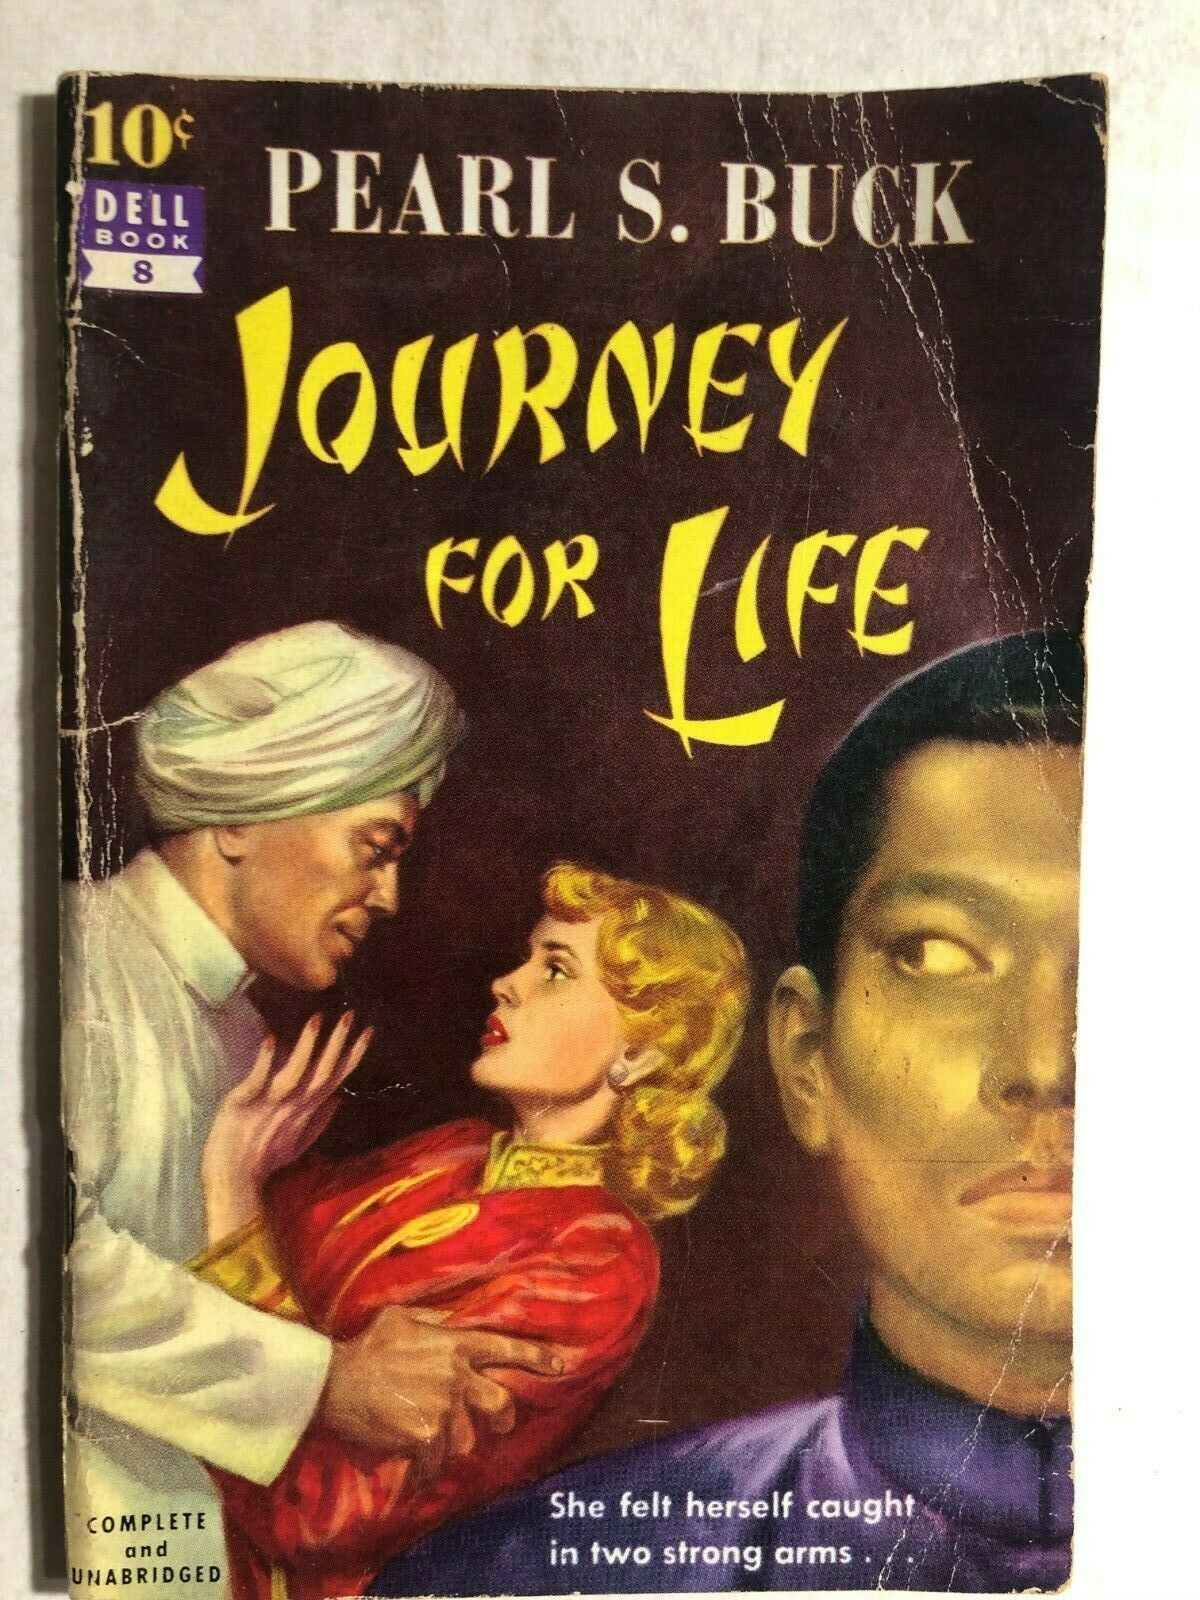 Primary image for JOURNEY FOR LIFE by Pearl S. Buck (10 cent paperback #8) Dell adventure in China